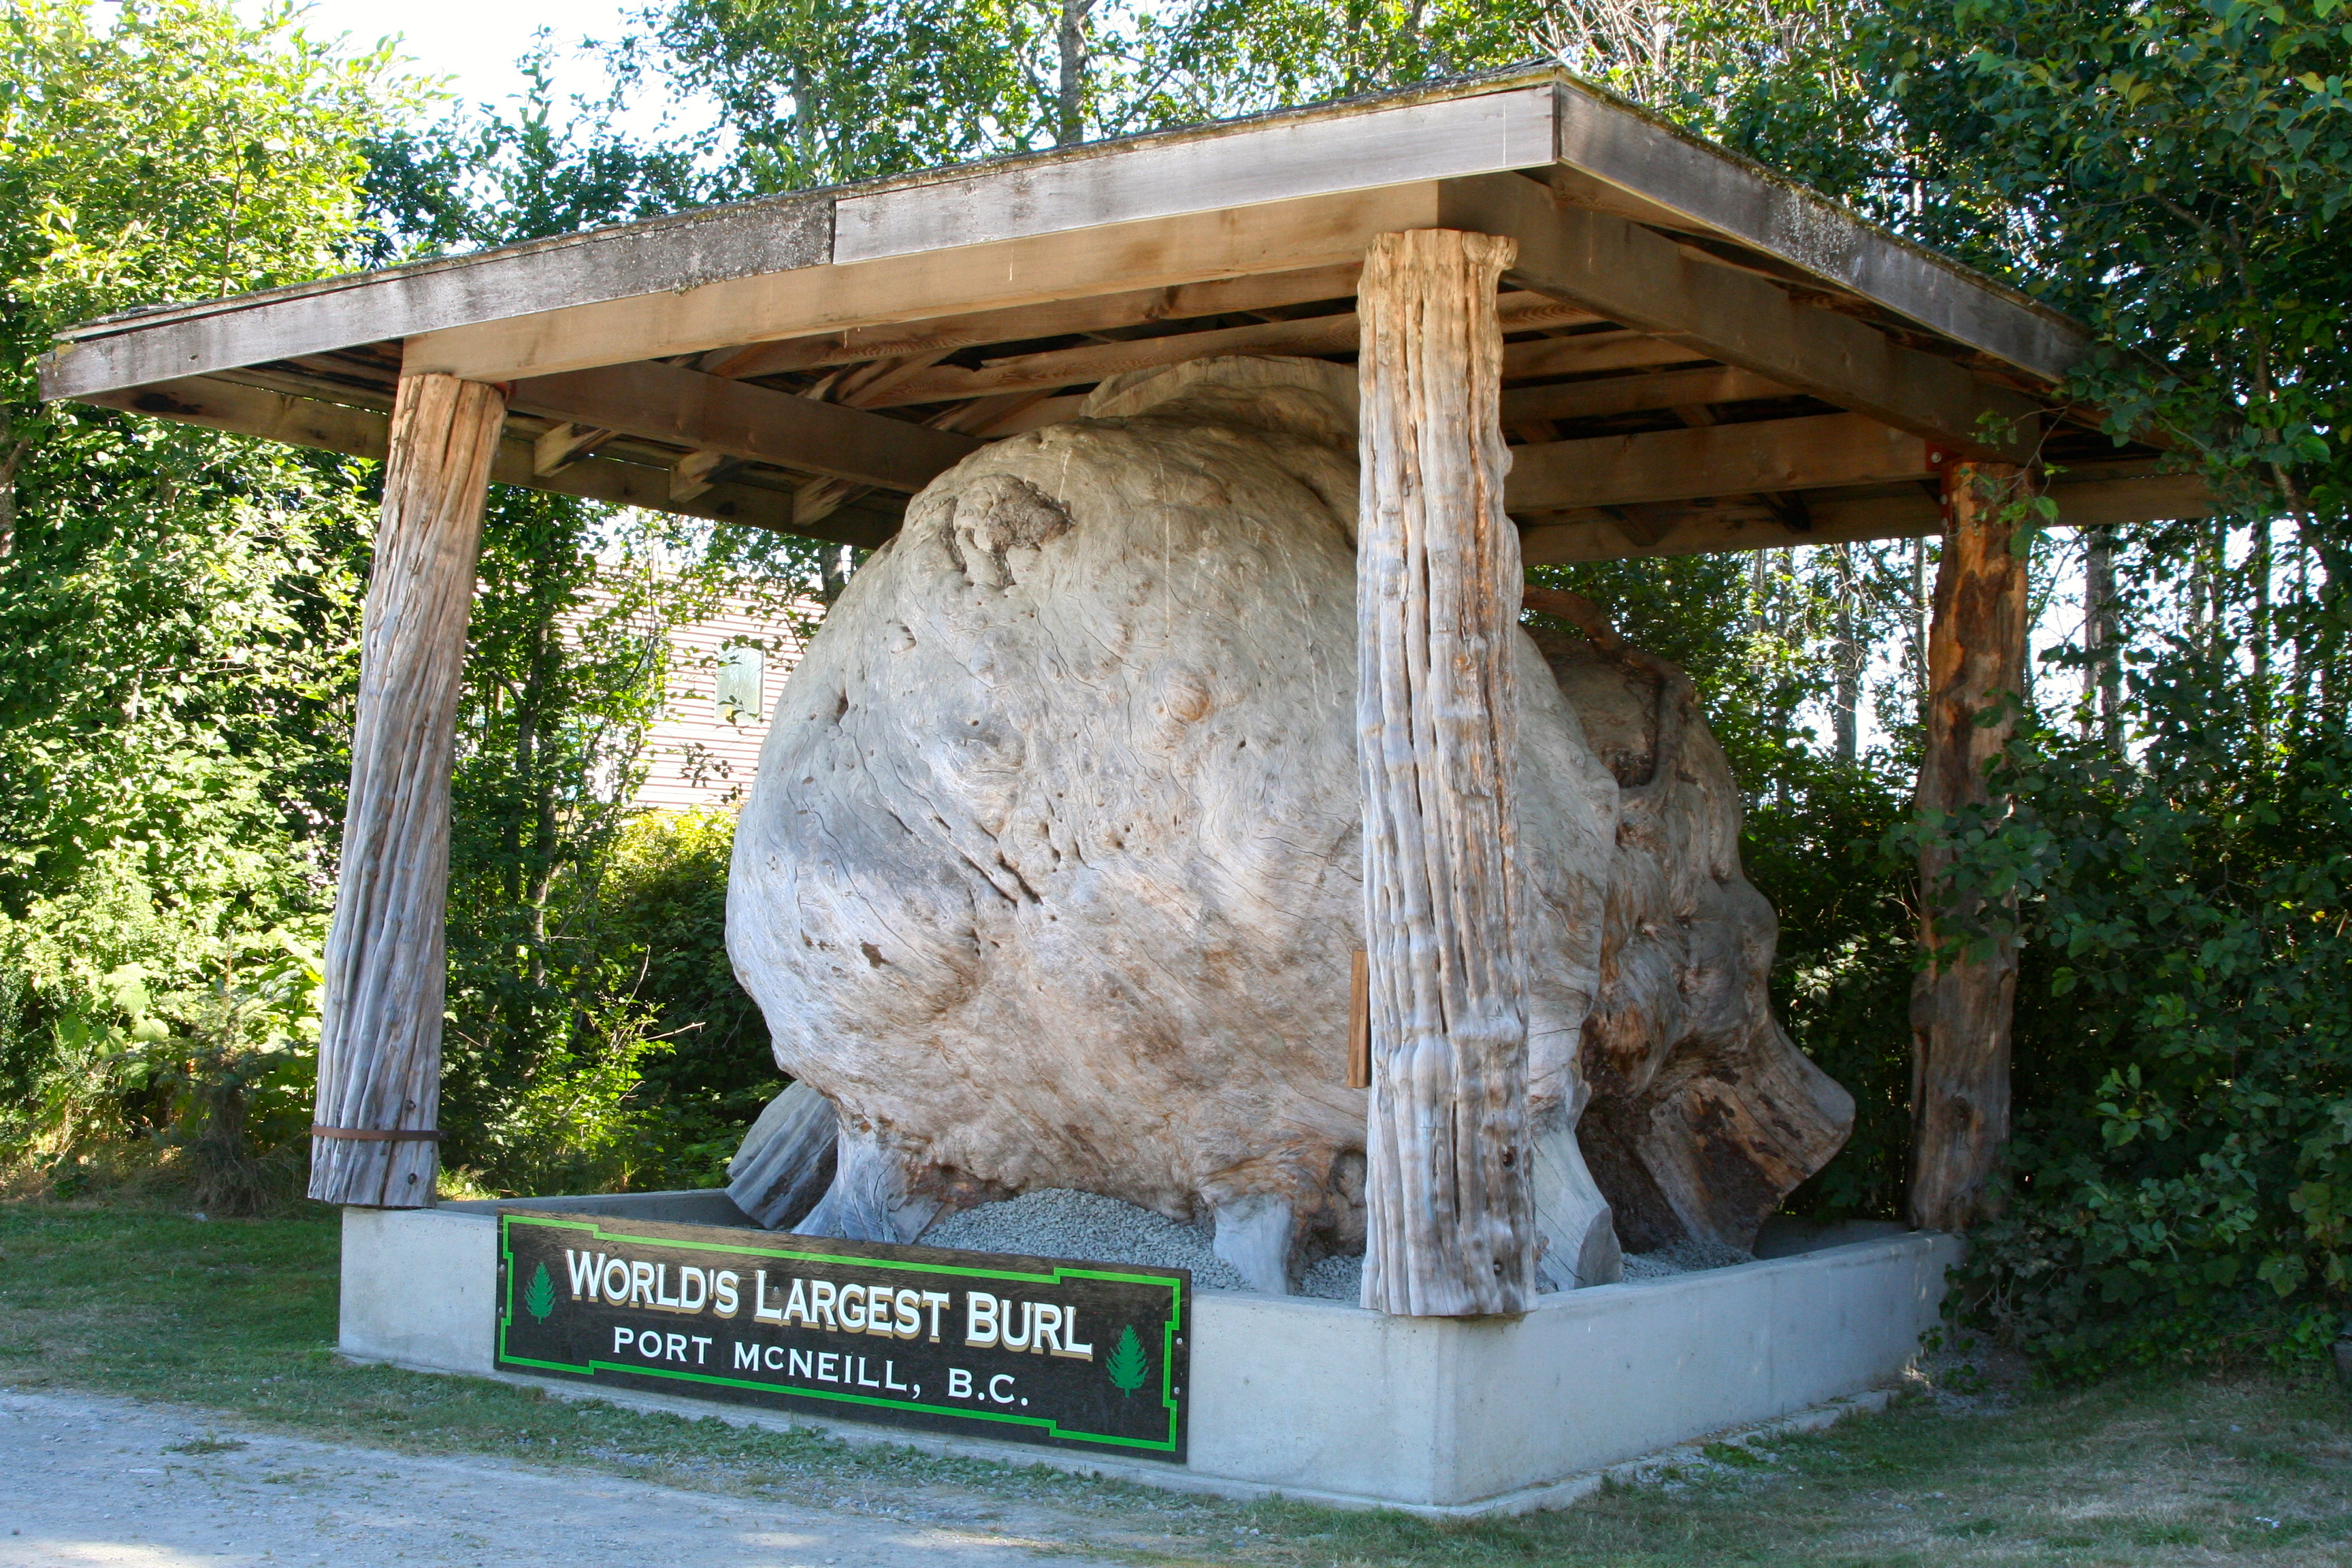 You are looking at Port McNeill's pride and joy: the worlds largest burl. Can you imagine this thing growing on a tree? (Photo by Peggy Mekemson.)